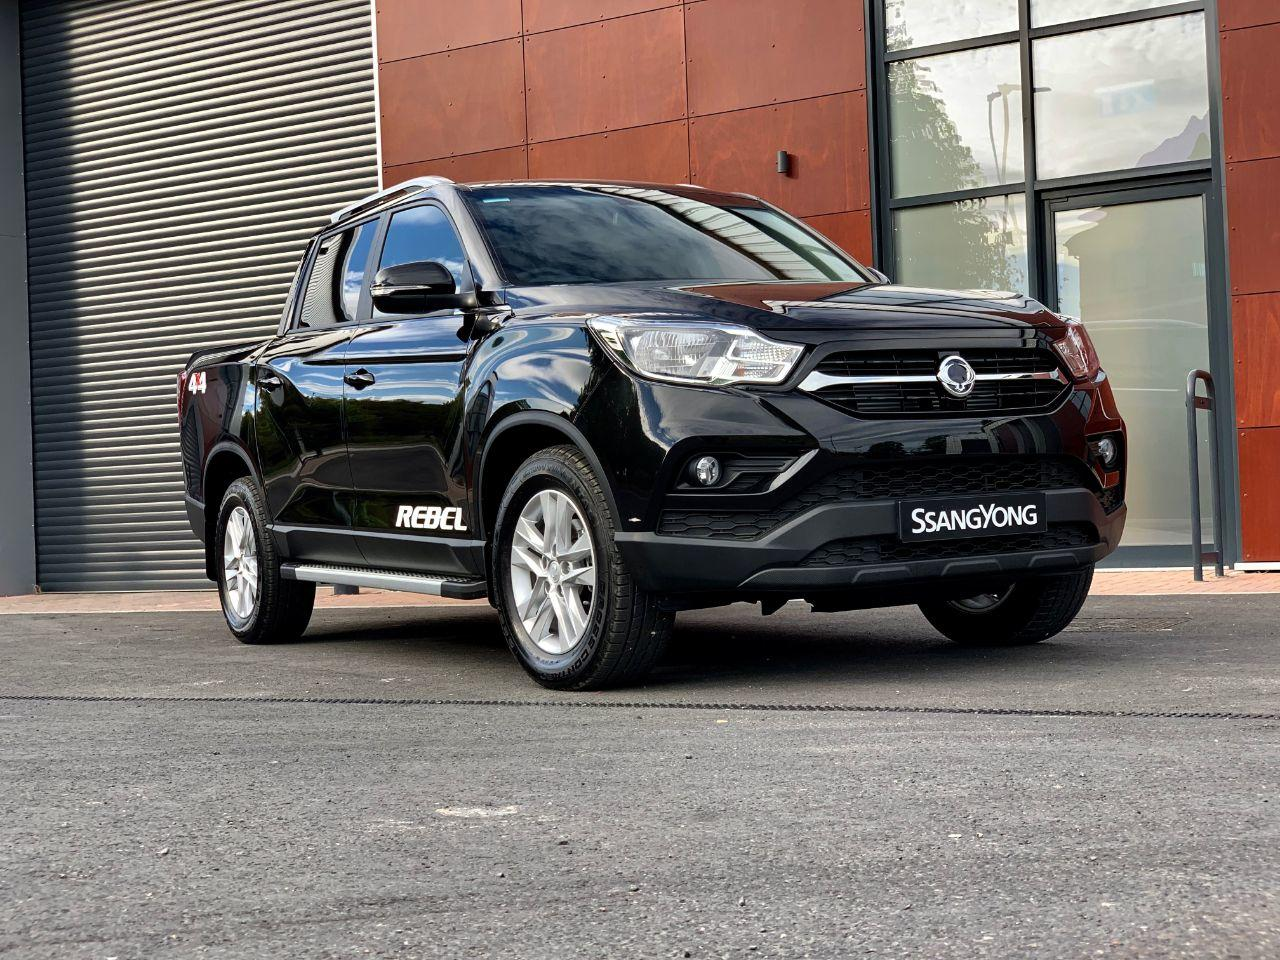 2021 SsangYong Musso 2.2 Brand New 2121 MUSSO EX CHEAPEST IN UK PRICE MATCH OFFER